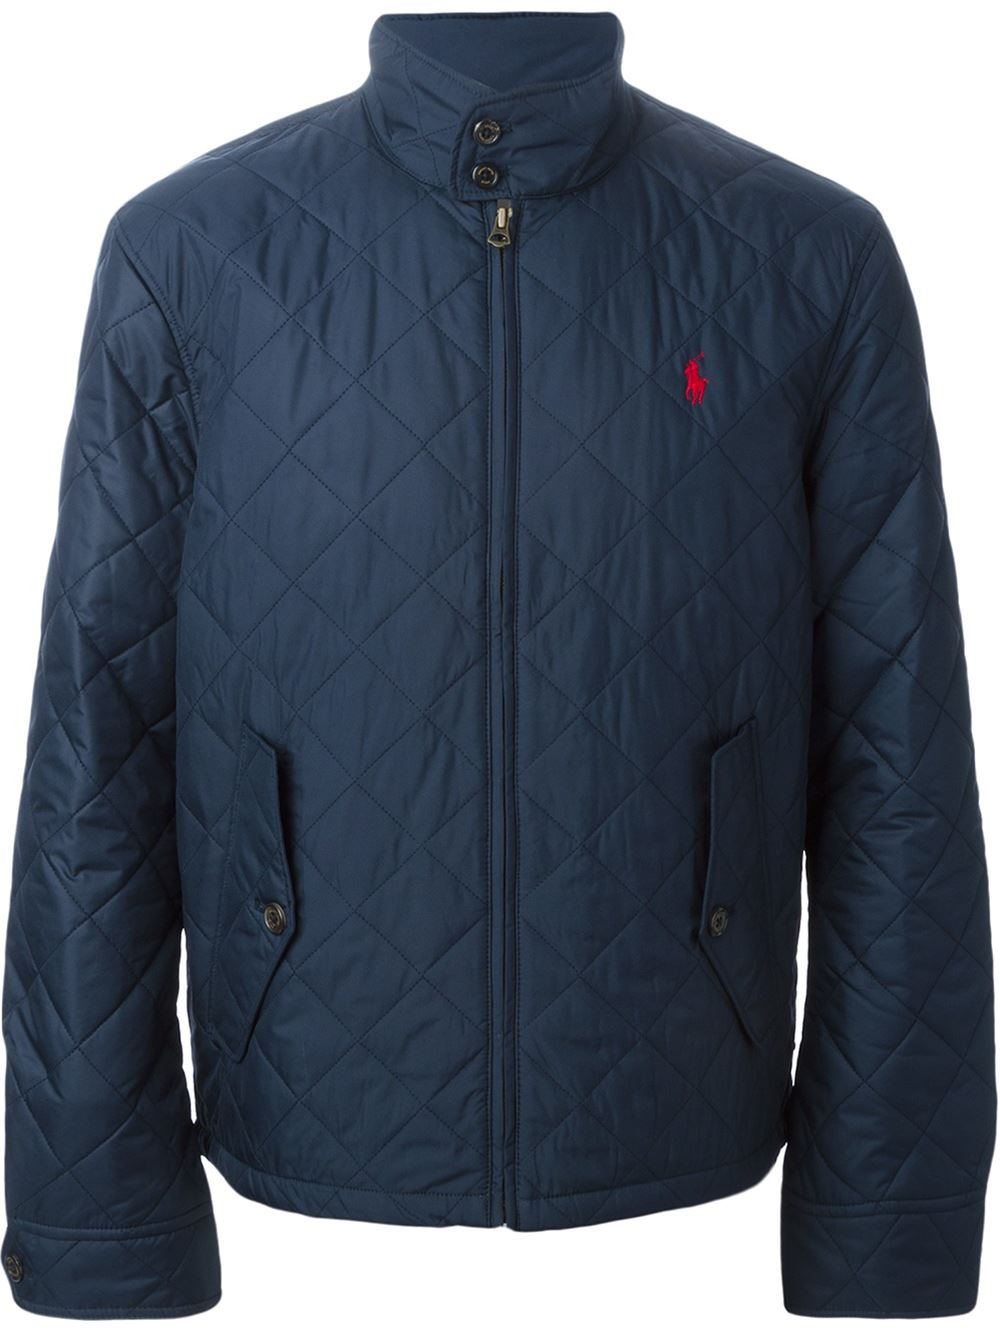 polo ralph lauren quilted jacket in blue for men lyst. Black Bedroom Furniture Sets. Home Design Ideas